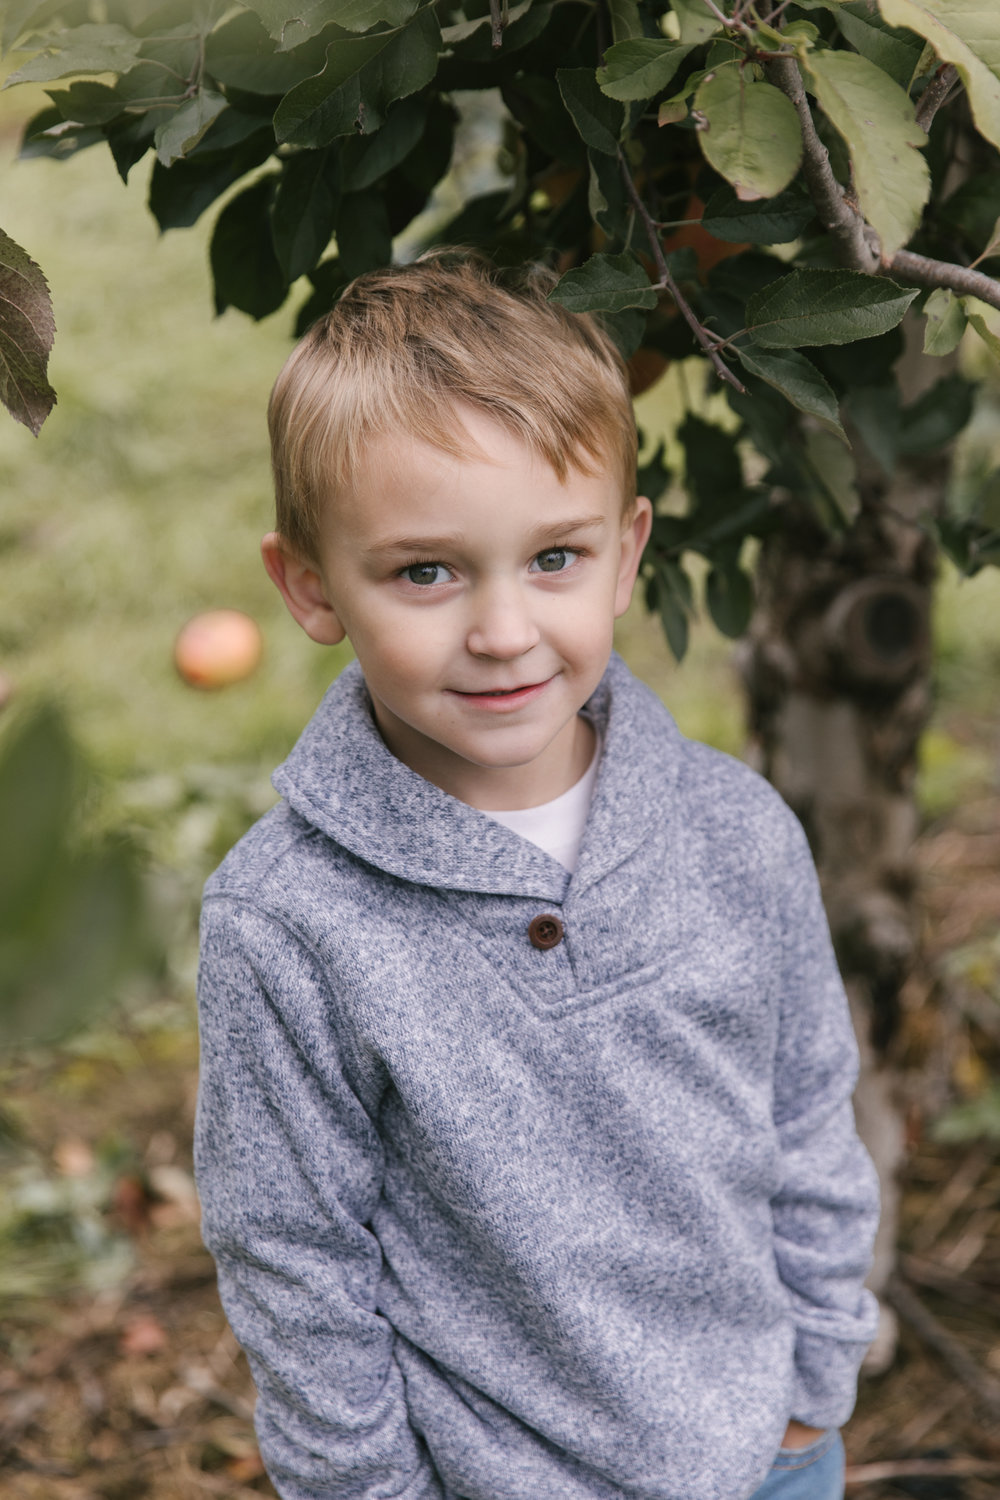 family-photography-session-at-hartford-apple-orchards-hartford-ohio-by-family-photographer-christie-leigh-photo-57.JPG